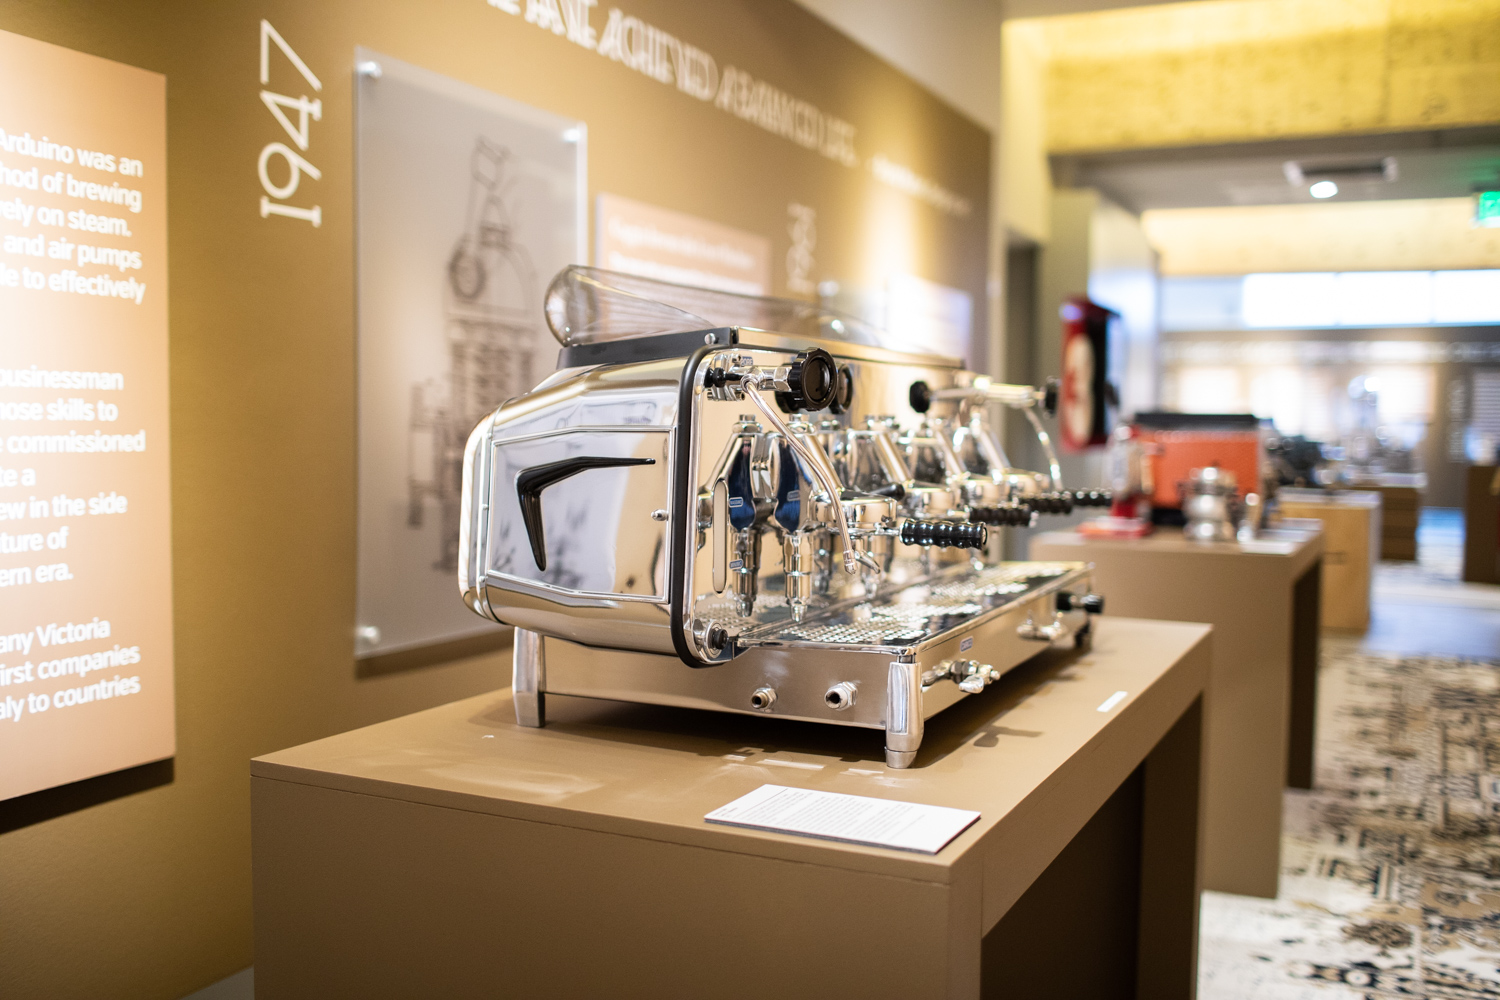 The Faema E61 on display at MODA's  Passione Italiana: The Art of Espresso  exhibition.